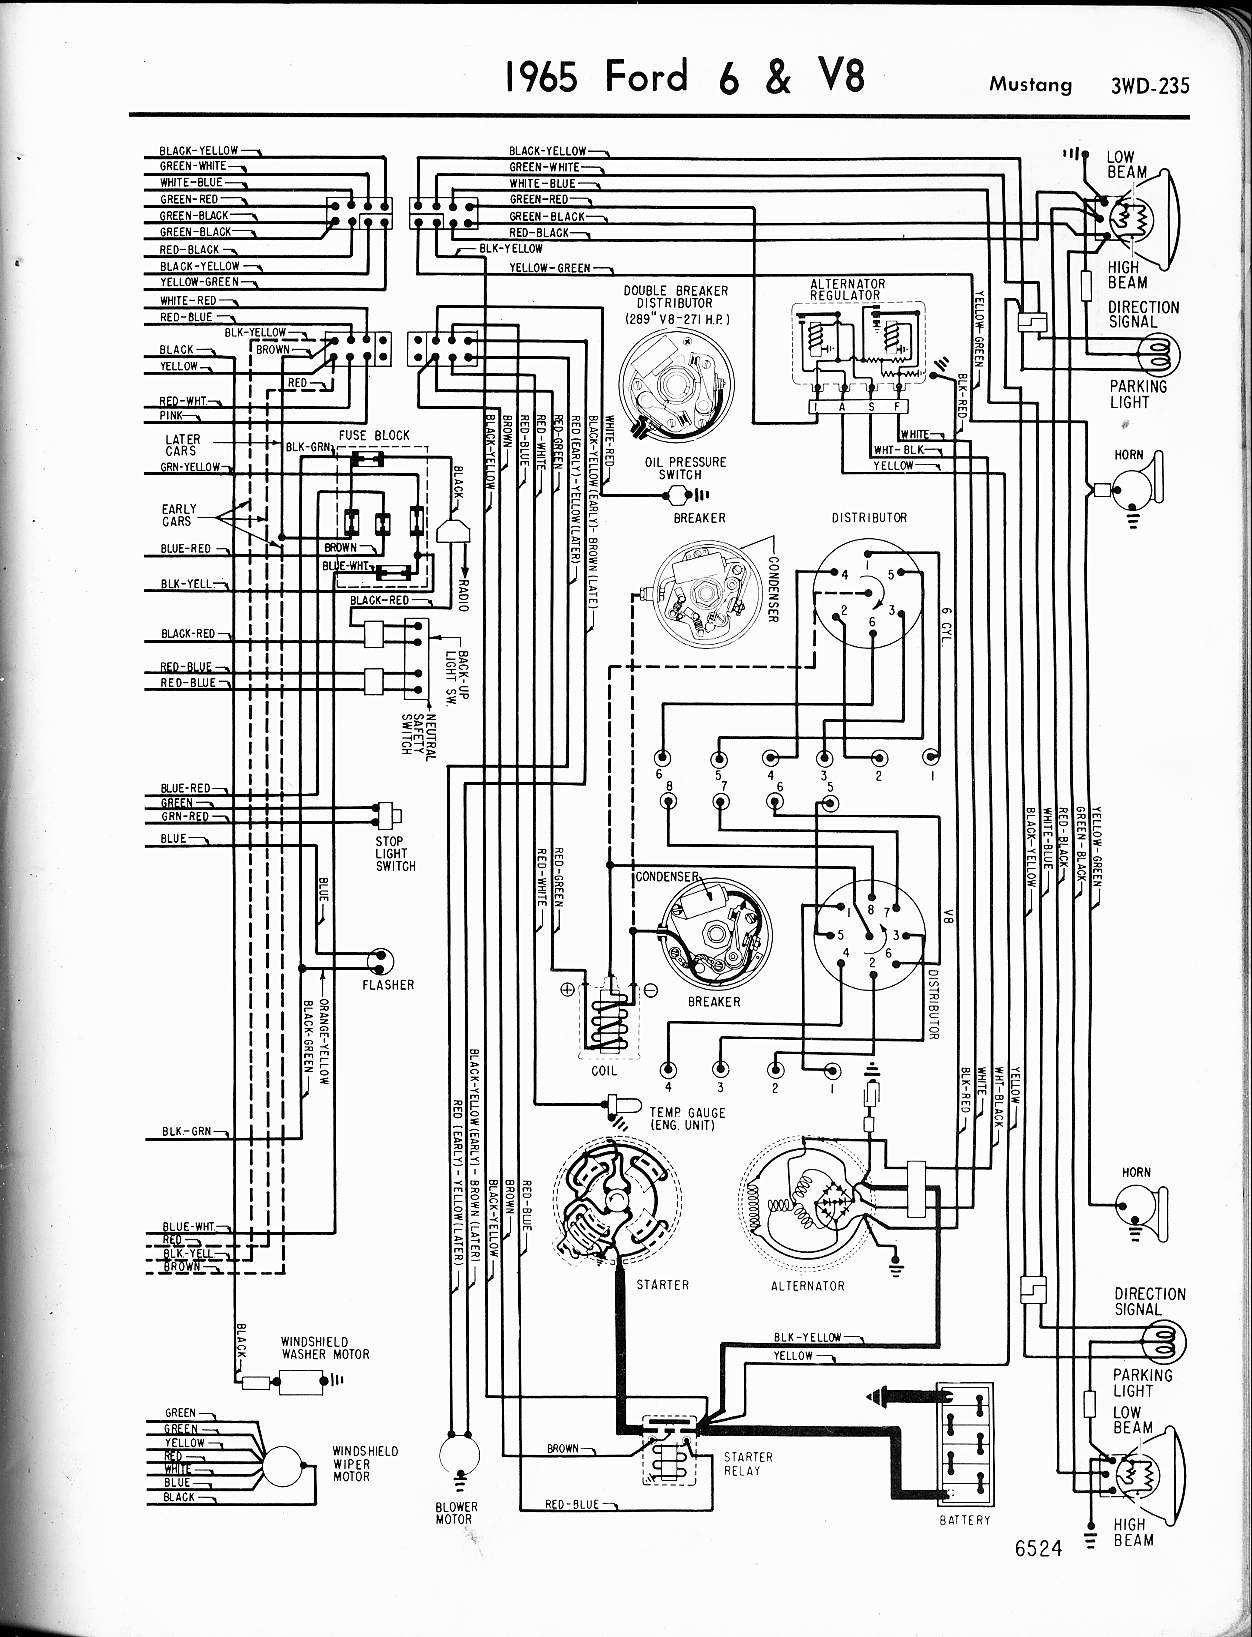 1965_mustang_wiring_2 ford diagrams ford torino wiring harness at readyjetset.co